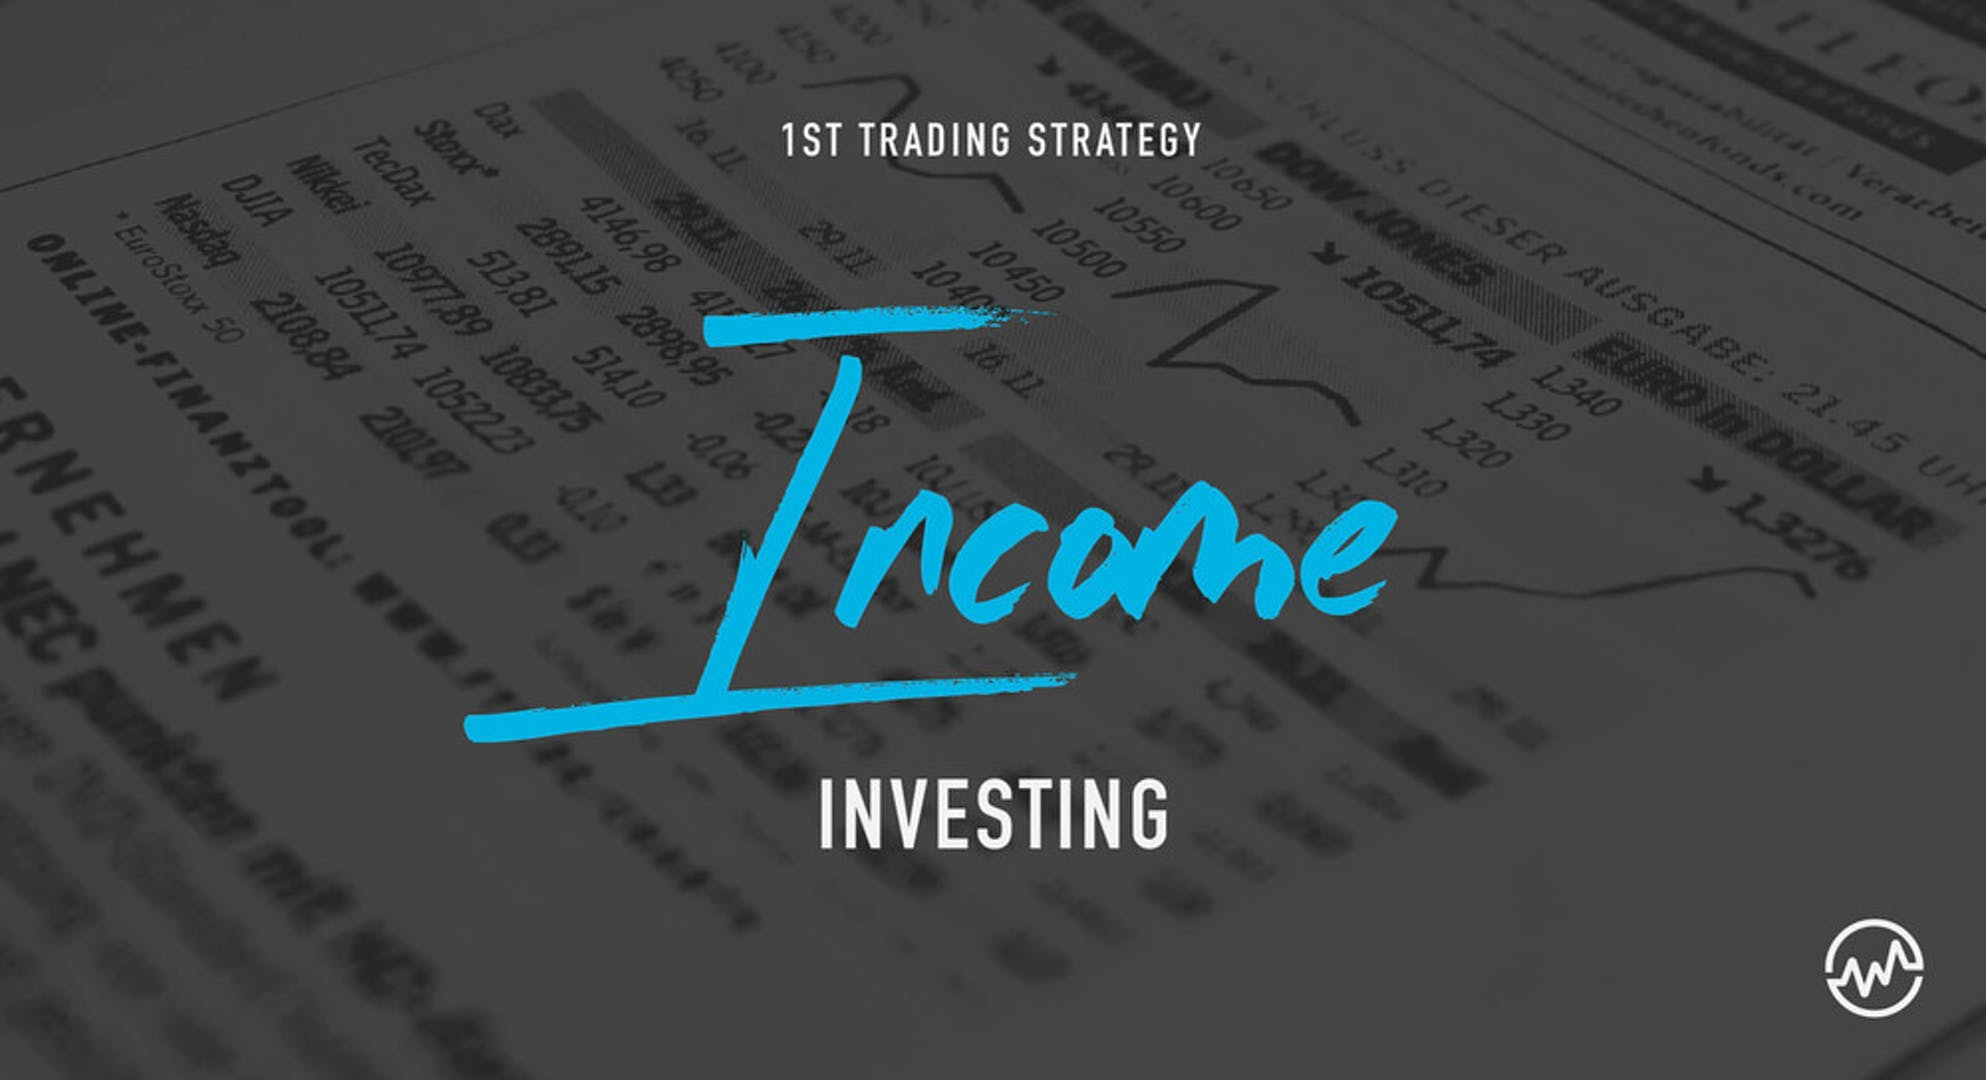 A spreadsheet explaining the investing strategy of income investing